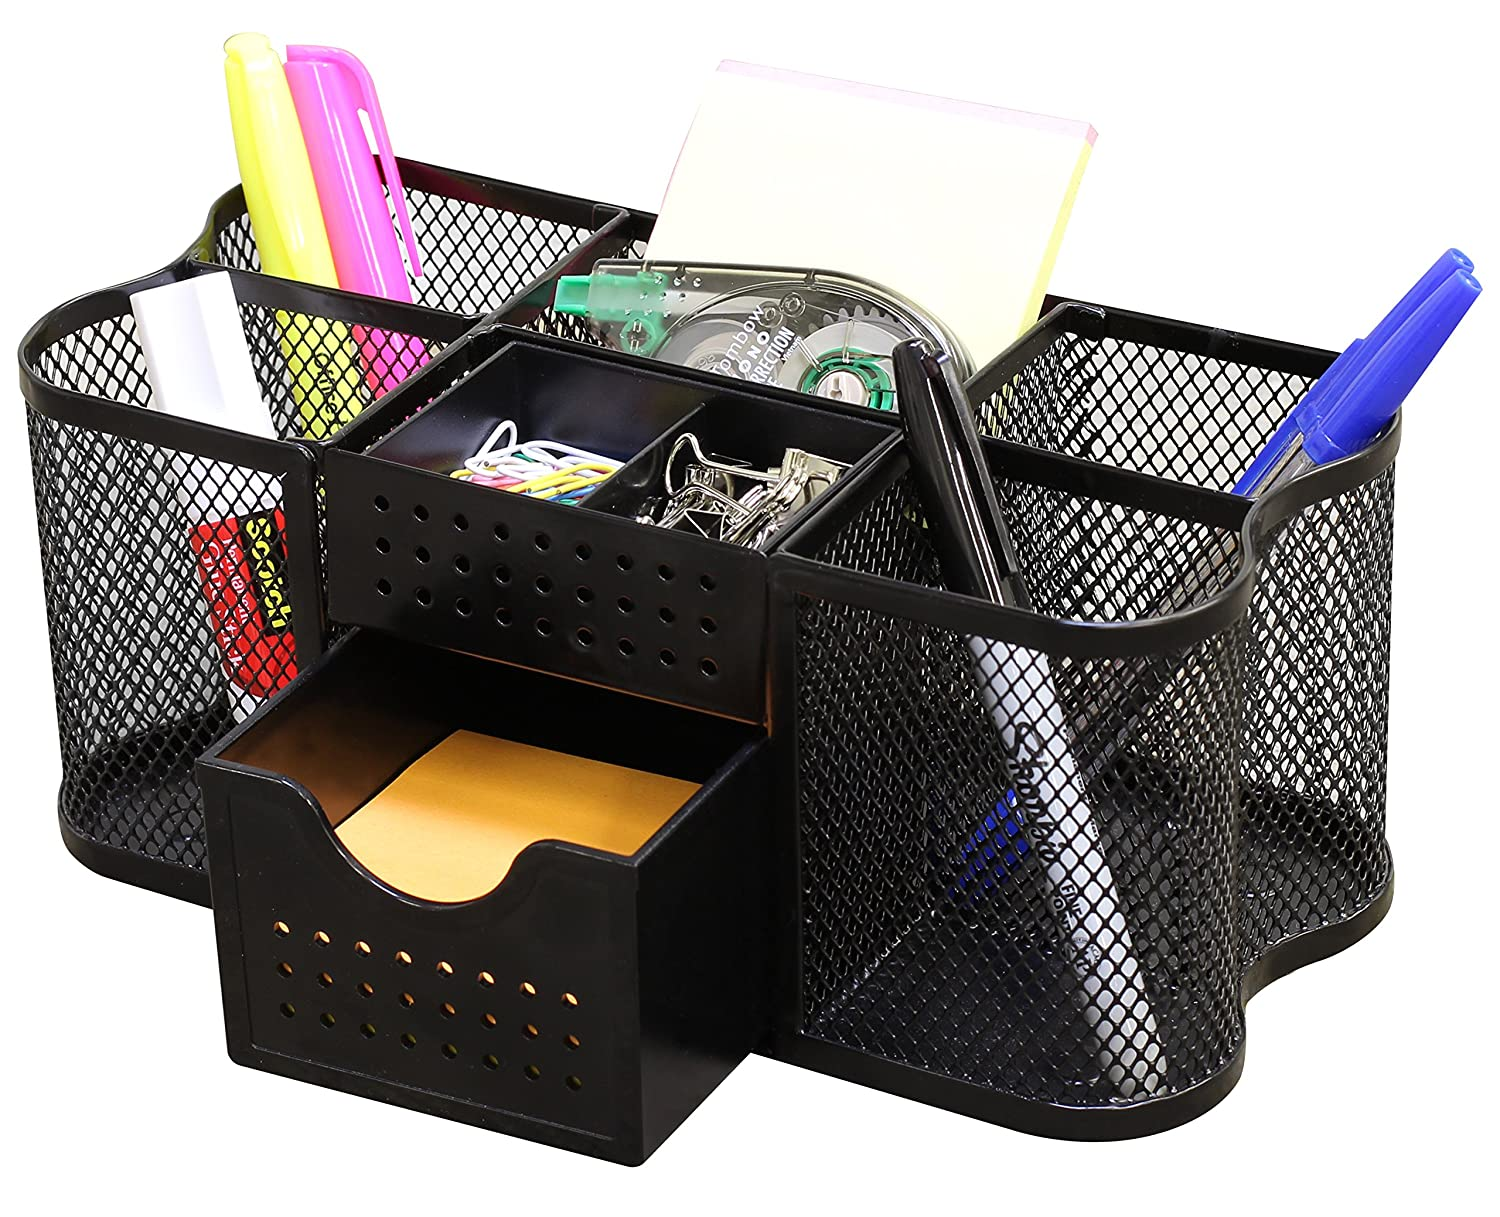 Amazon.com : DecoBros Desk Supplies Organizer Caddy, Black : Office ...